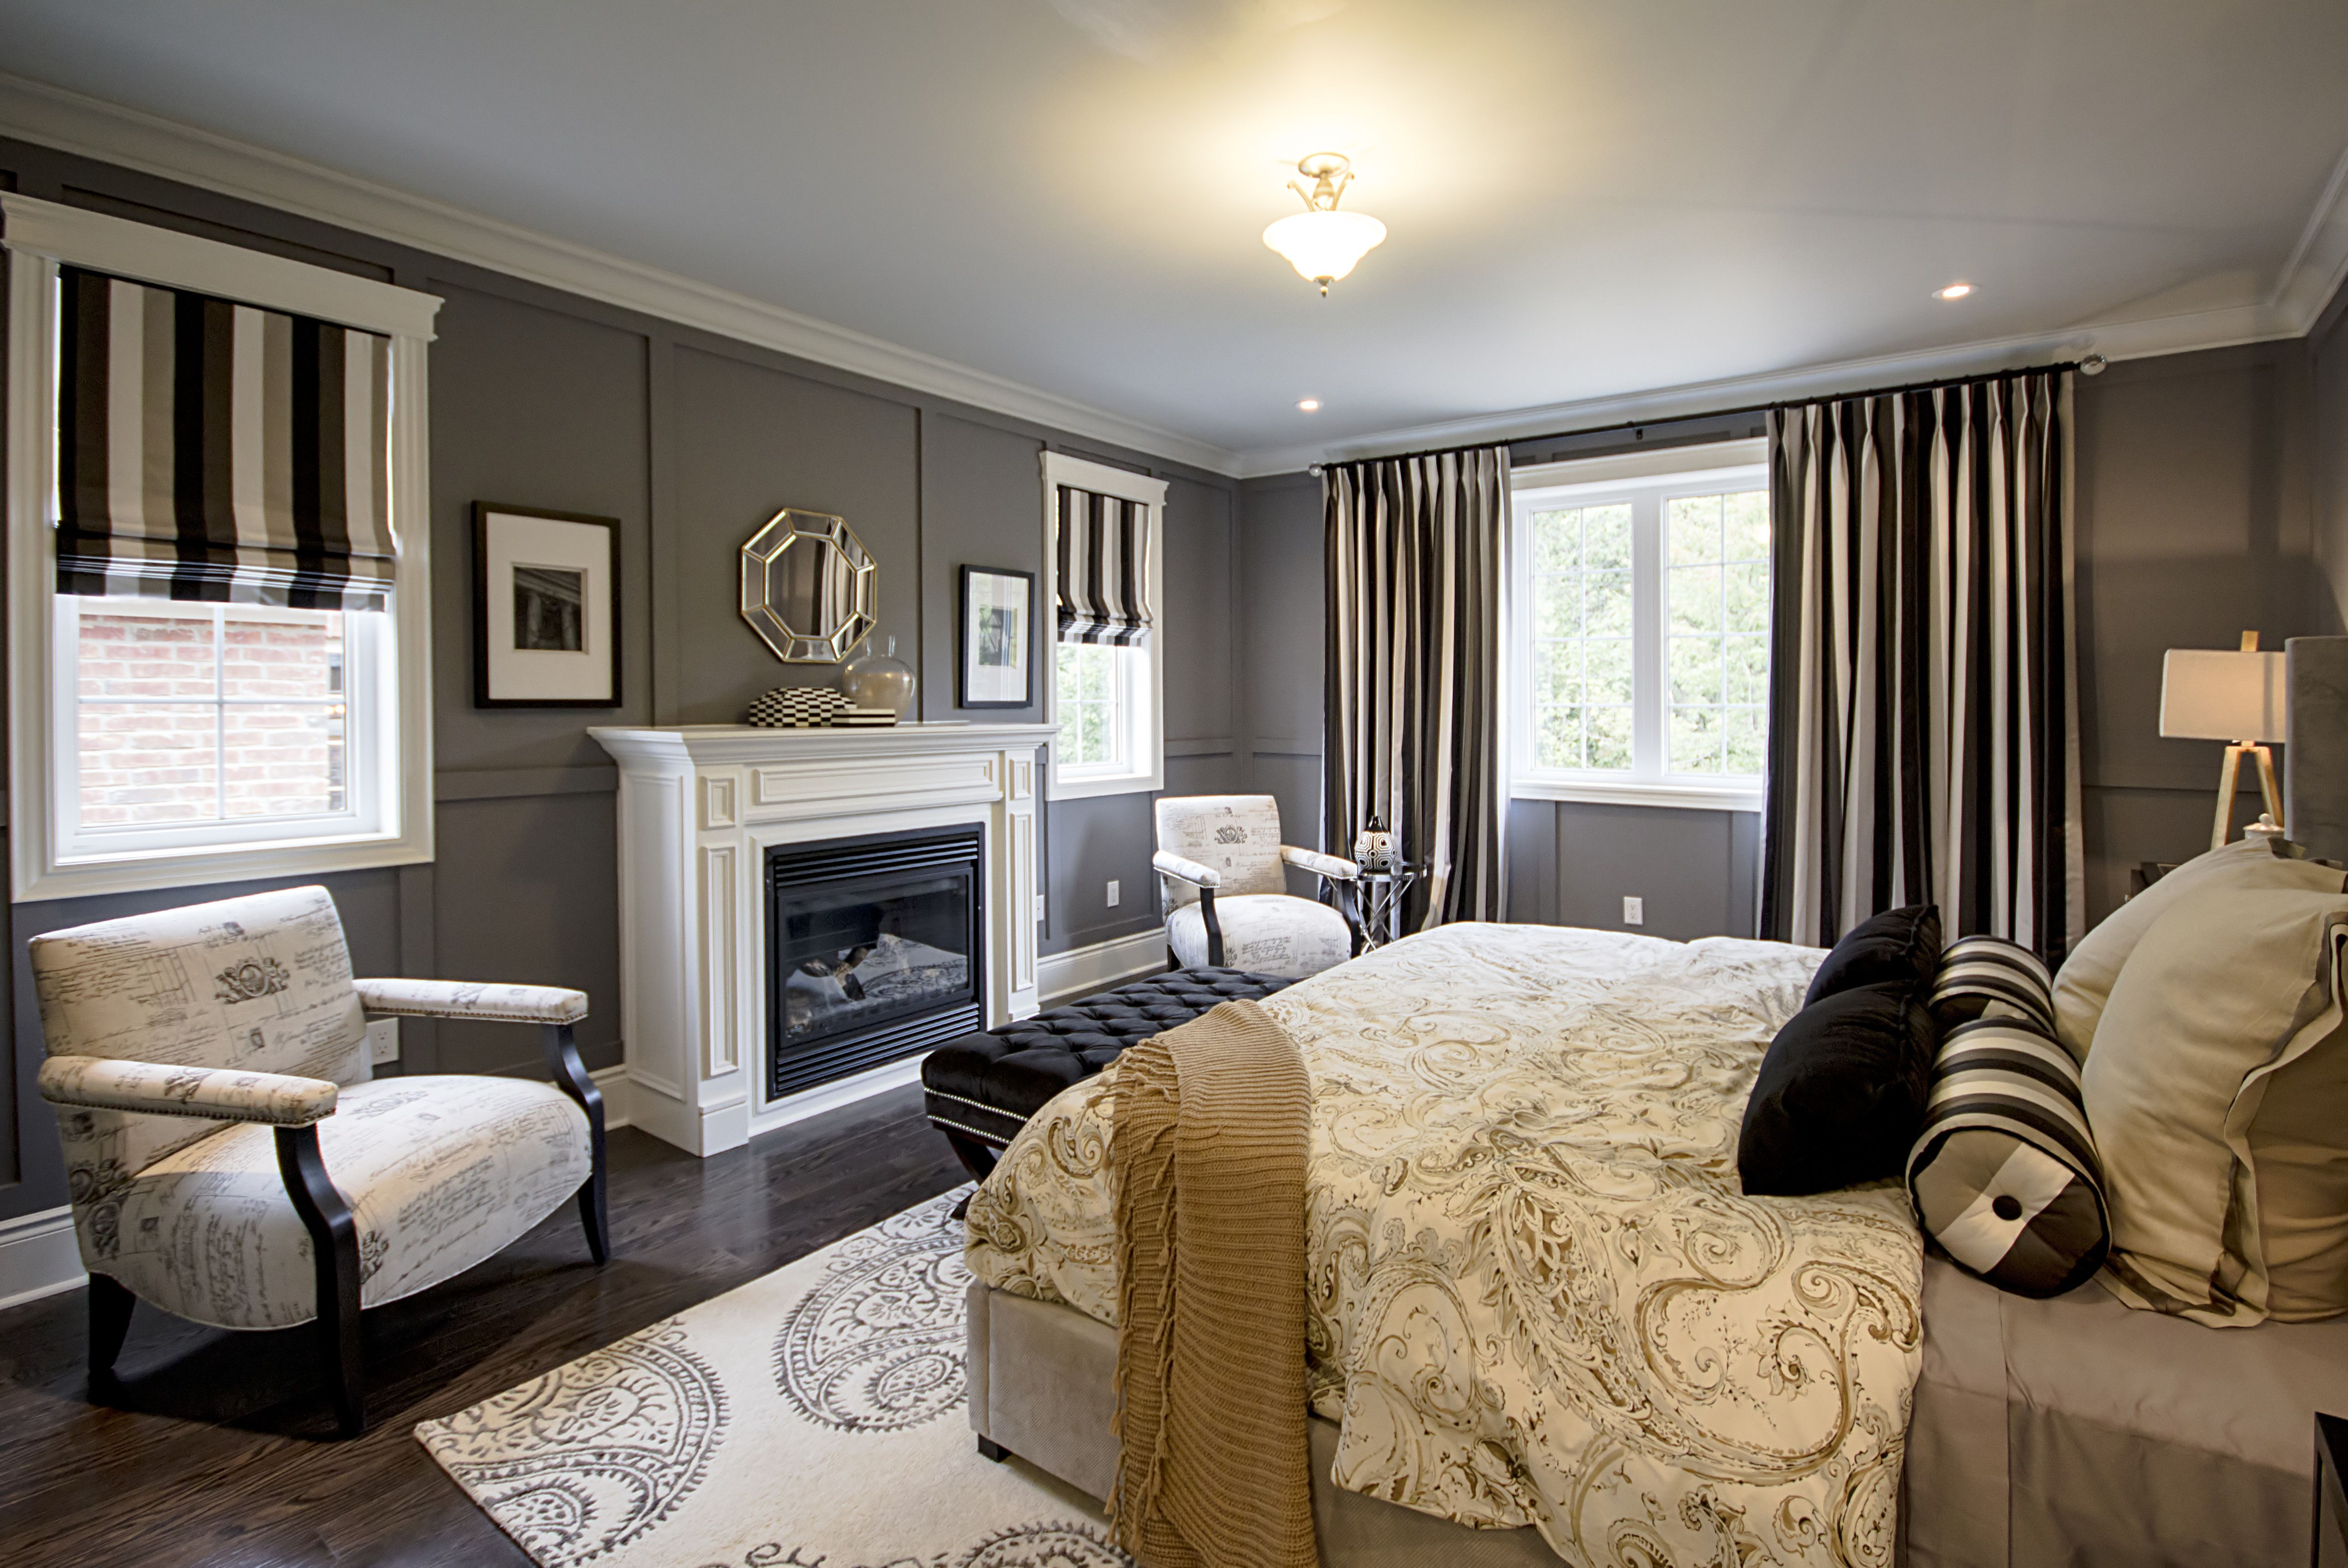 Master suite in the Cheshire model home at Fieldstone in Mono. Master suite in the Cheshire model home at Fieldstone in Mono